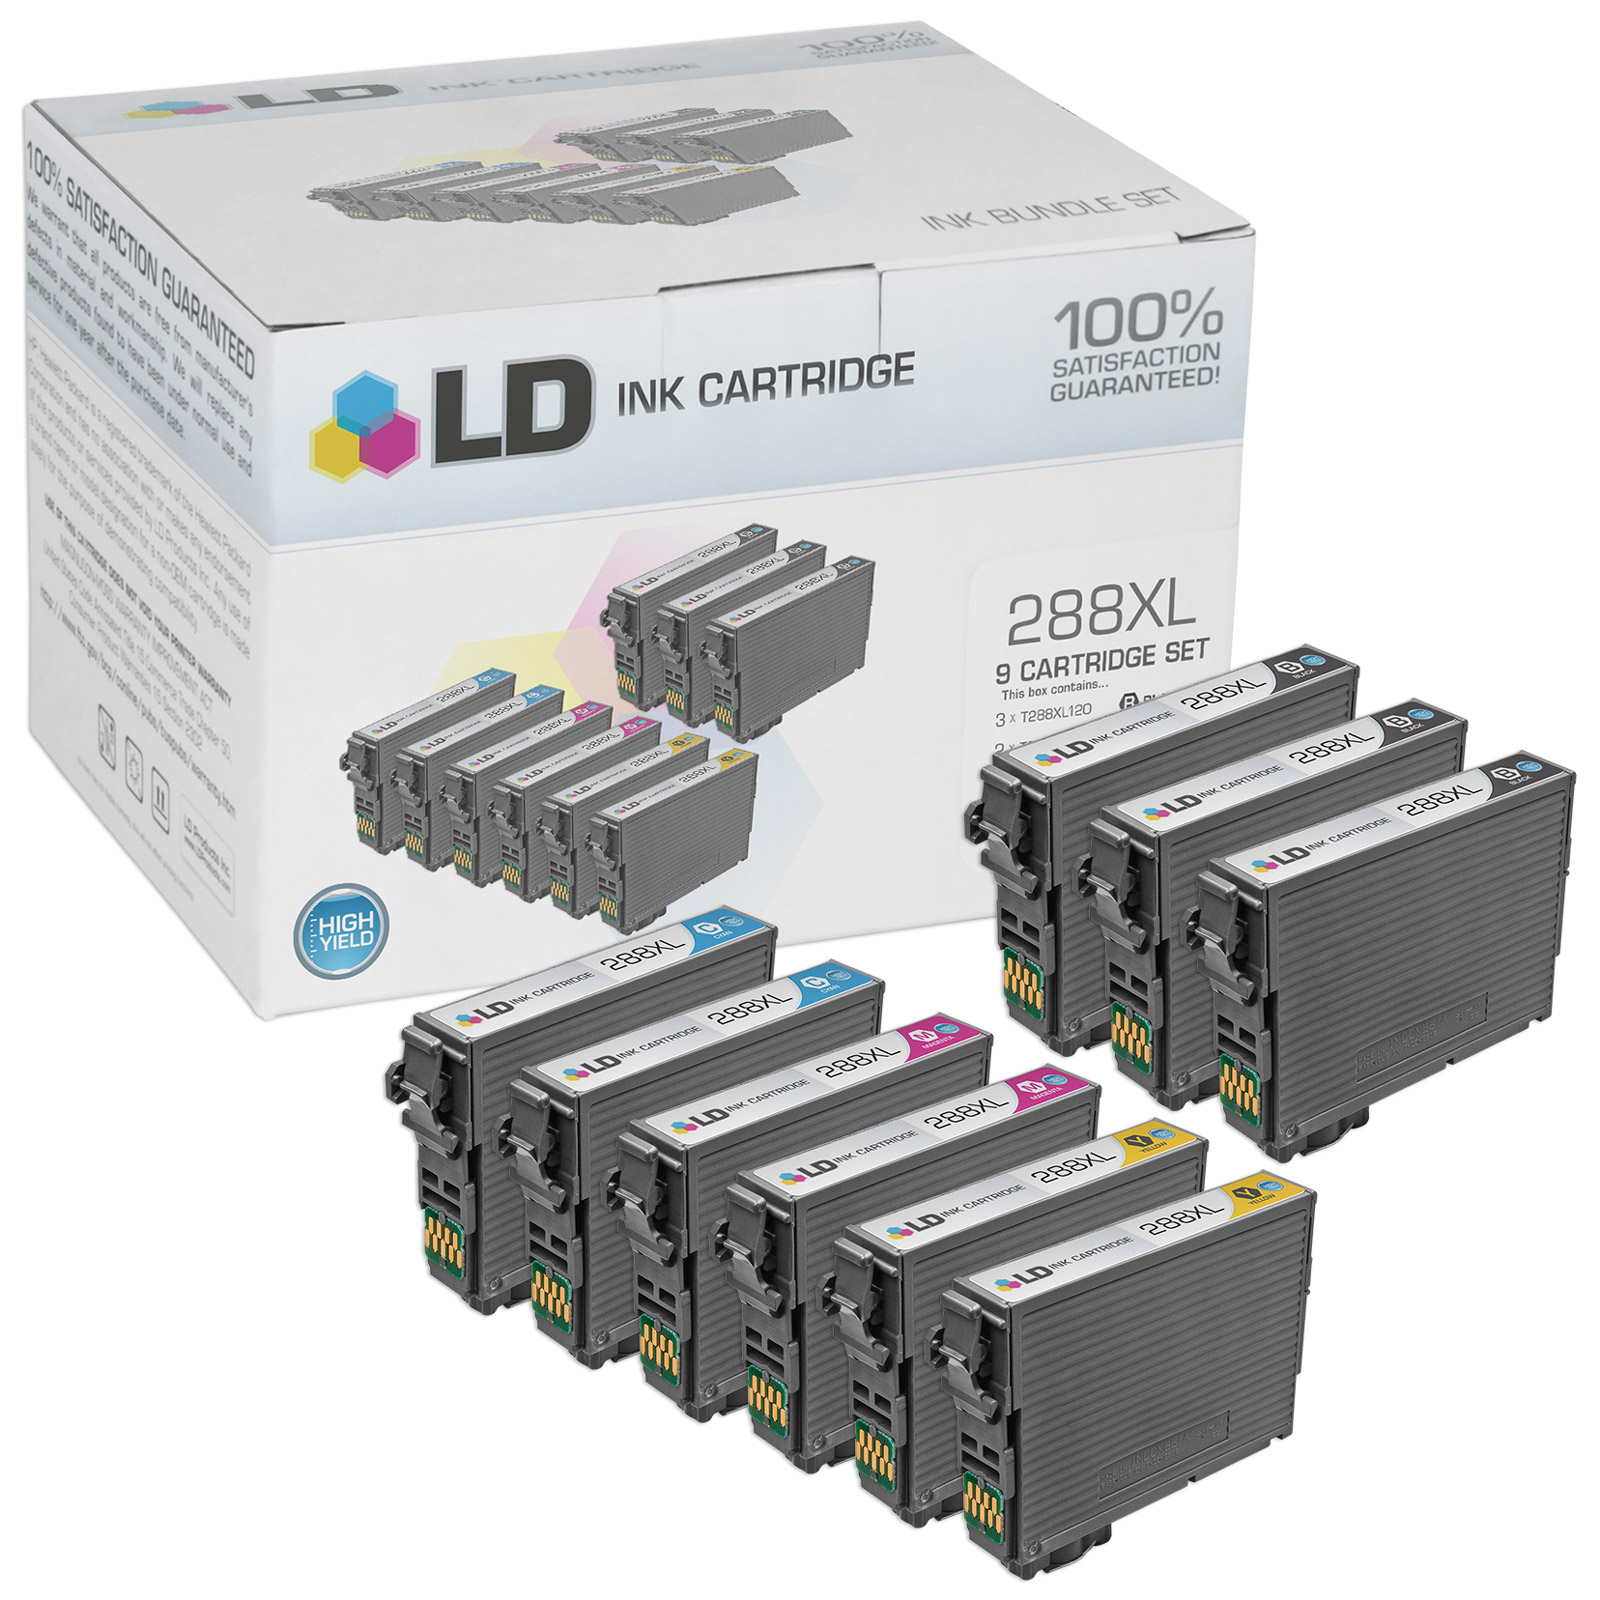 LD Remanufactured Replacements for Epson 288XL Set of 9 High Yield Cartridges: 3 Black, 2 Cyan, 2 Magenta & 2 Yellow for use in Expression XP-330, XP-340, XP-430, XP-434 & XP-446